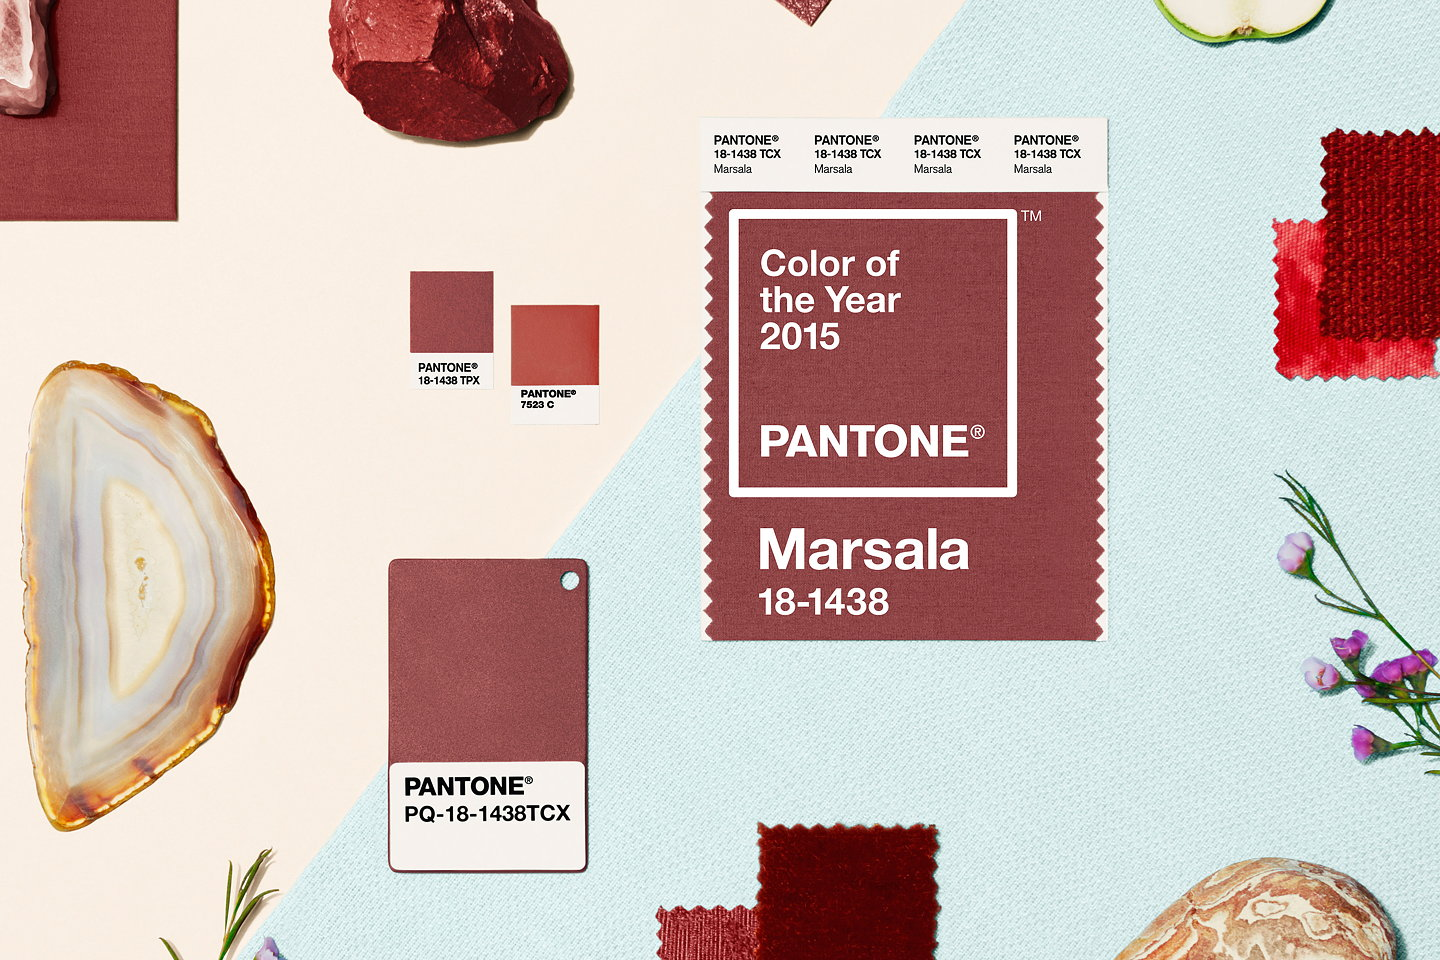 Pantone Color of the Year for